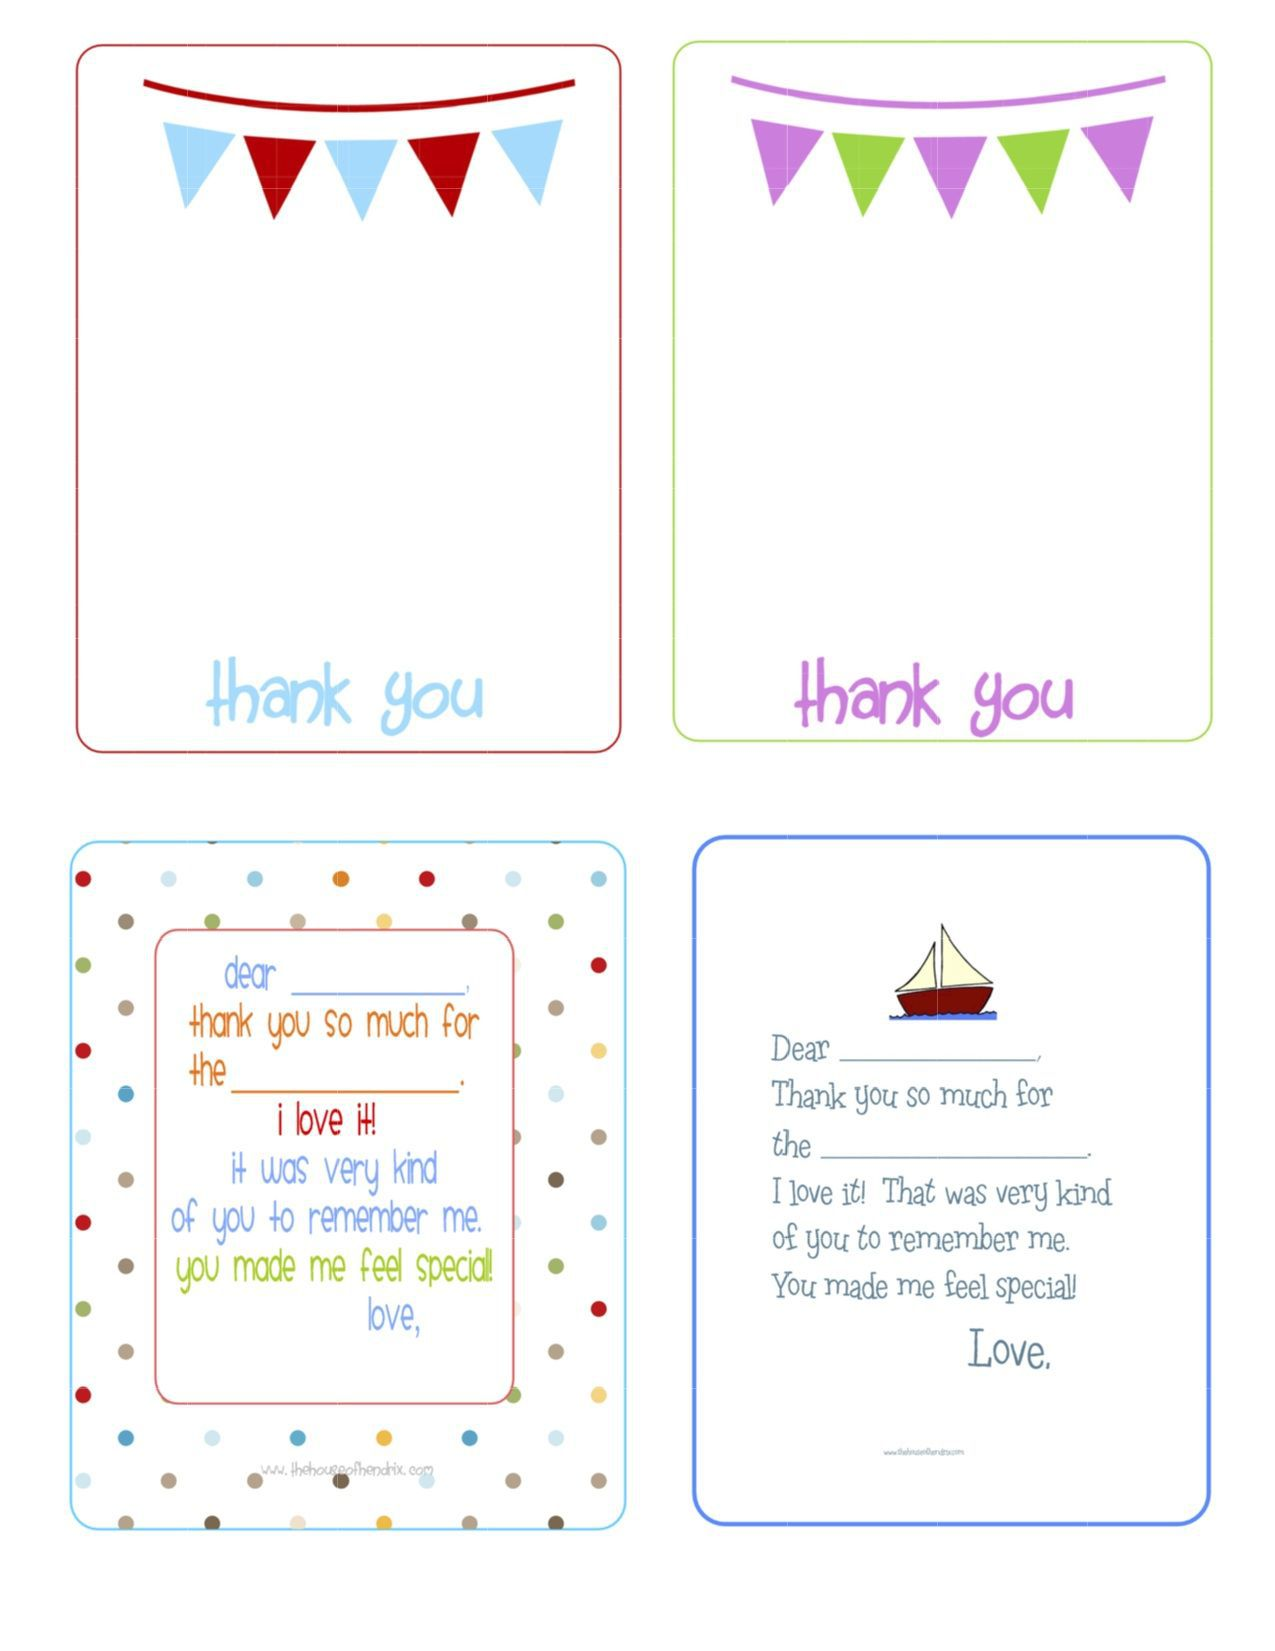 002 Stirring Thank You Note Template Printable Inspiration  Letter Baby Card WordFull